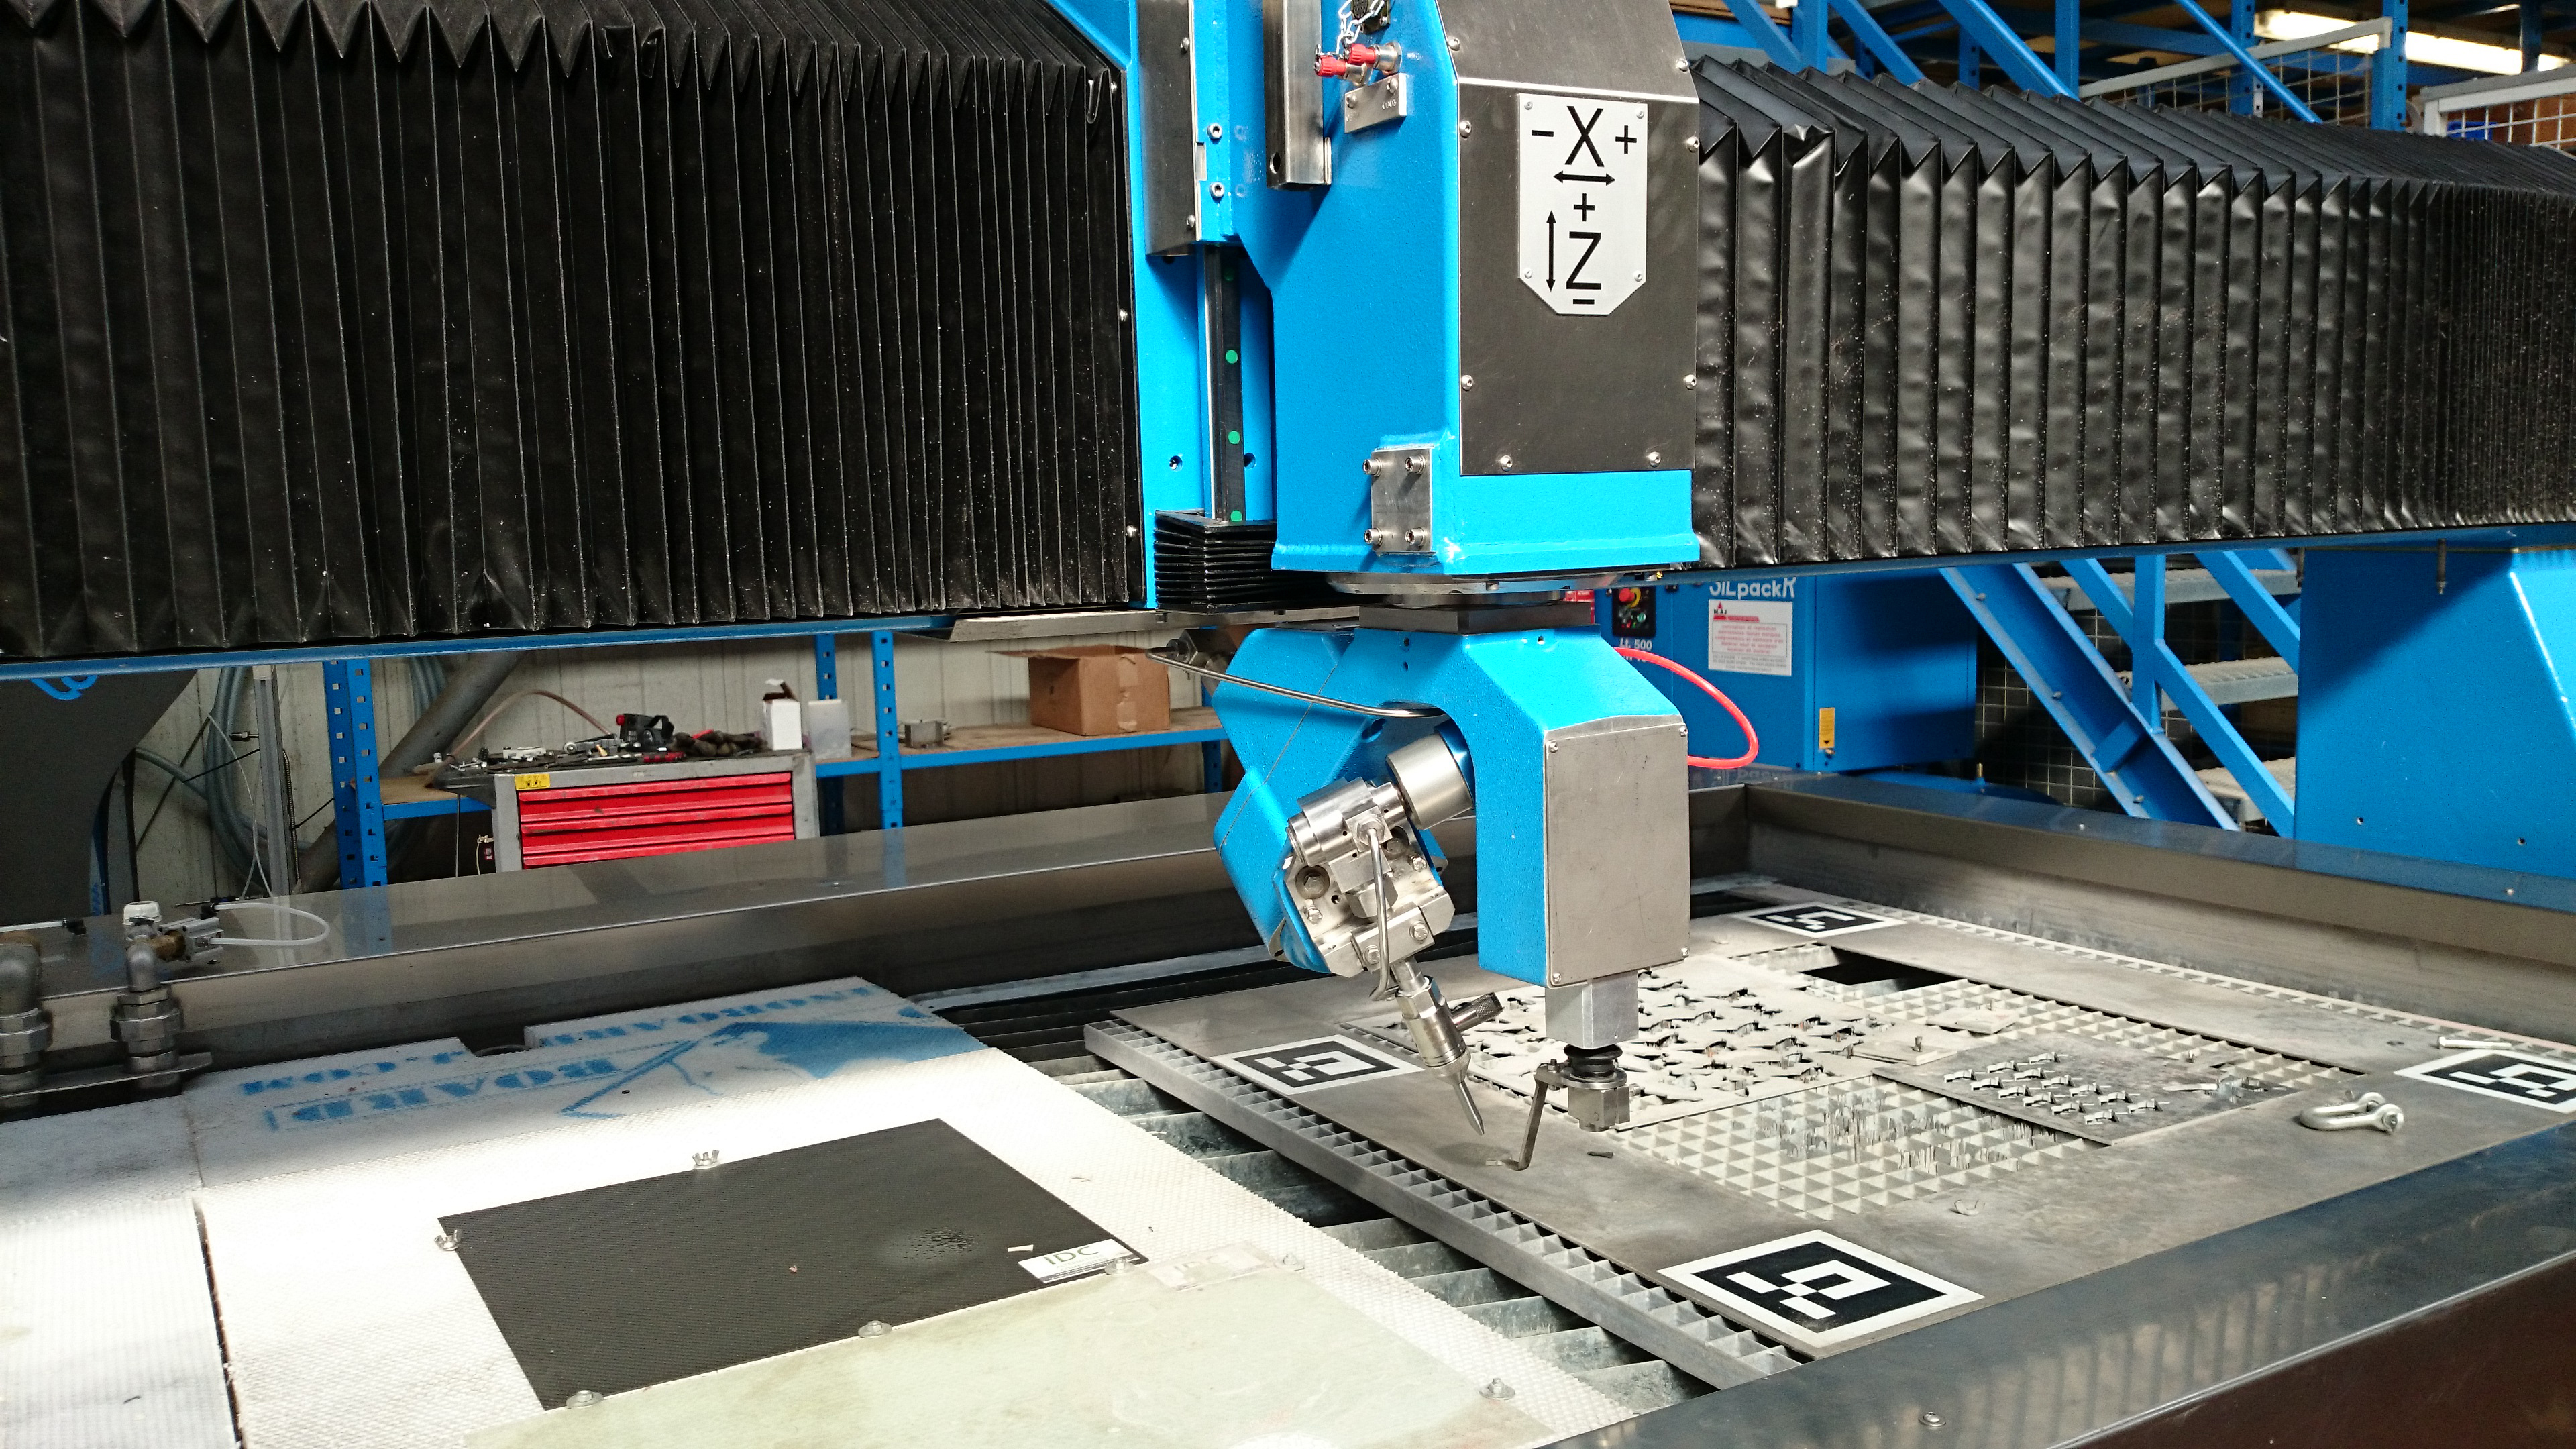 Installation of the mini cutting head in a waterjet cutting system